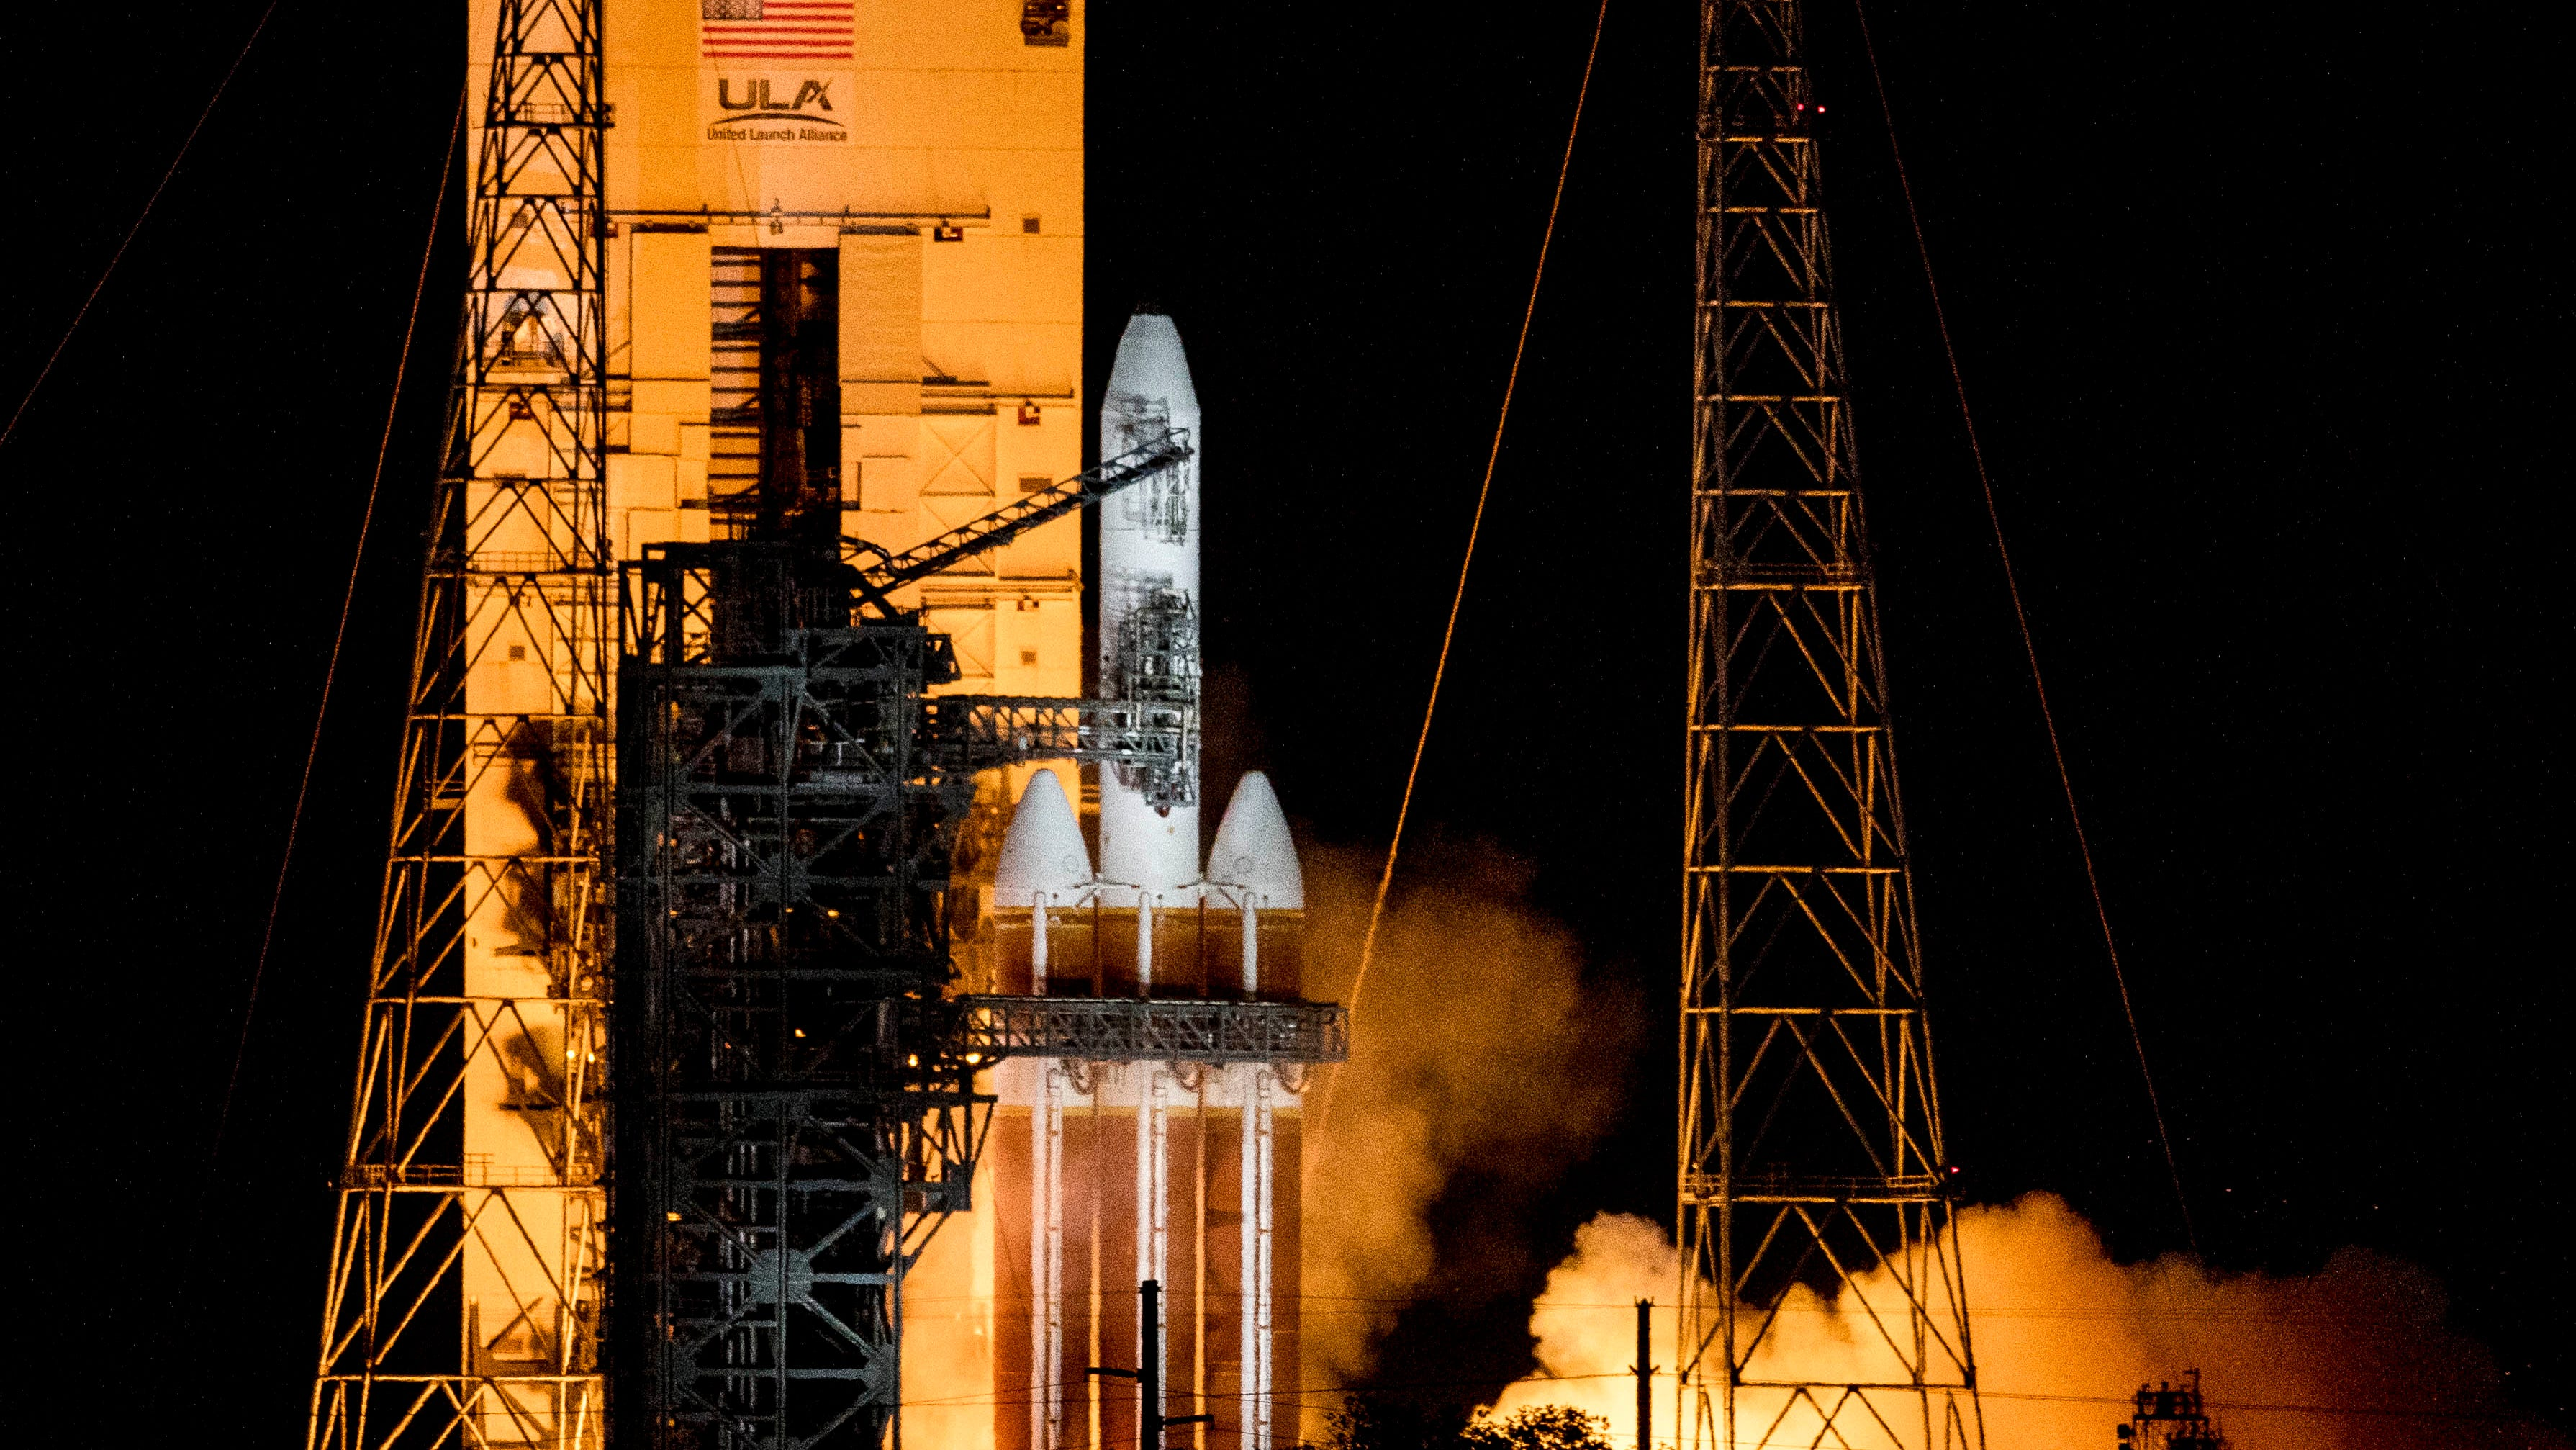 A United Launch Alliance Delta IV Heavy rocket remains on the pad at Cape Canaveral Air Force Station on Saturday, August 29, 2020. Launch of the rocket, carrying a payload for the National Reconnaissance Office, was aborted just before liftoff.